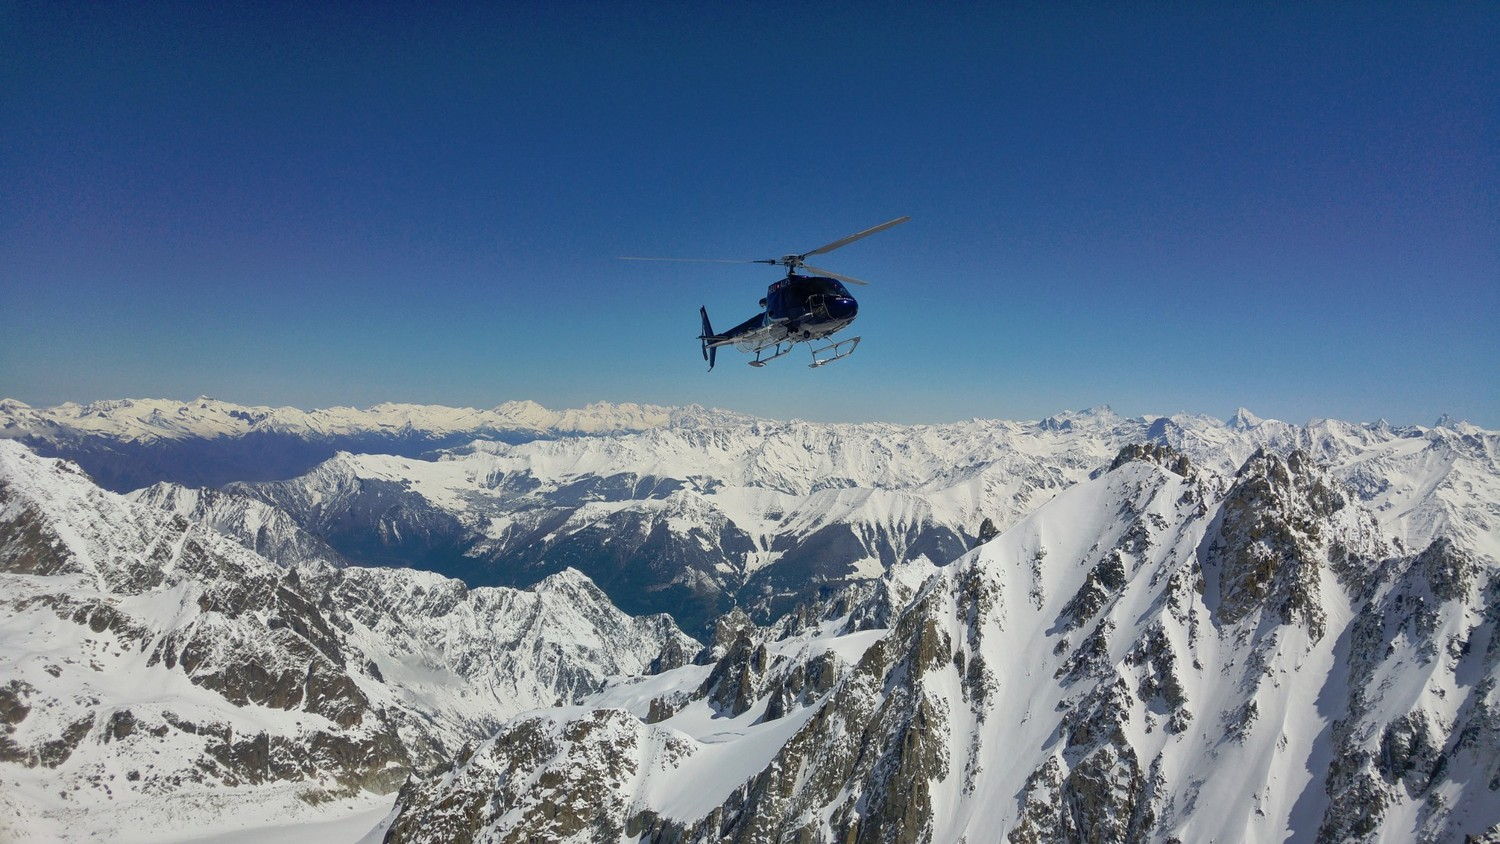 Apparently heli skiing helicopter from Switzerland dropping people directly at the ridge above the Col du Tour Noir..